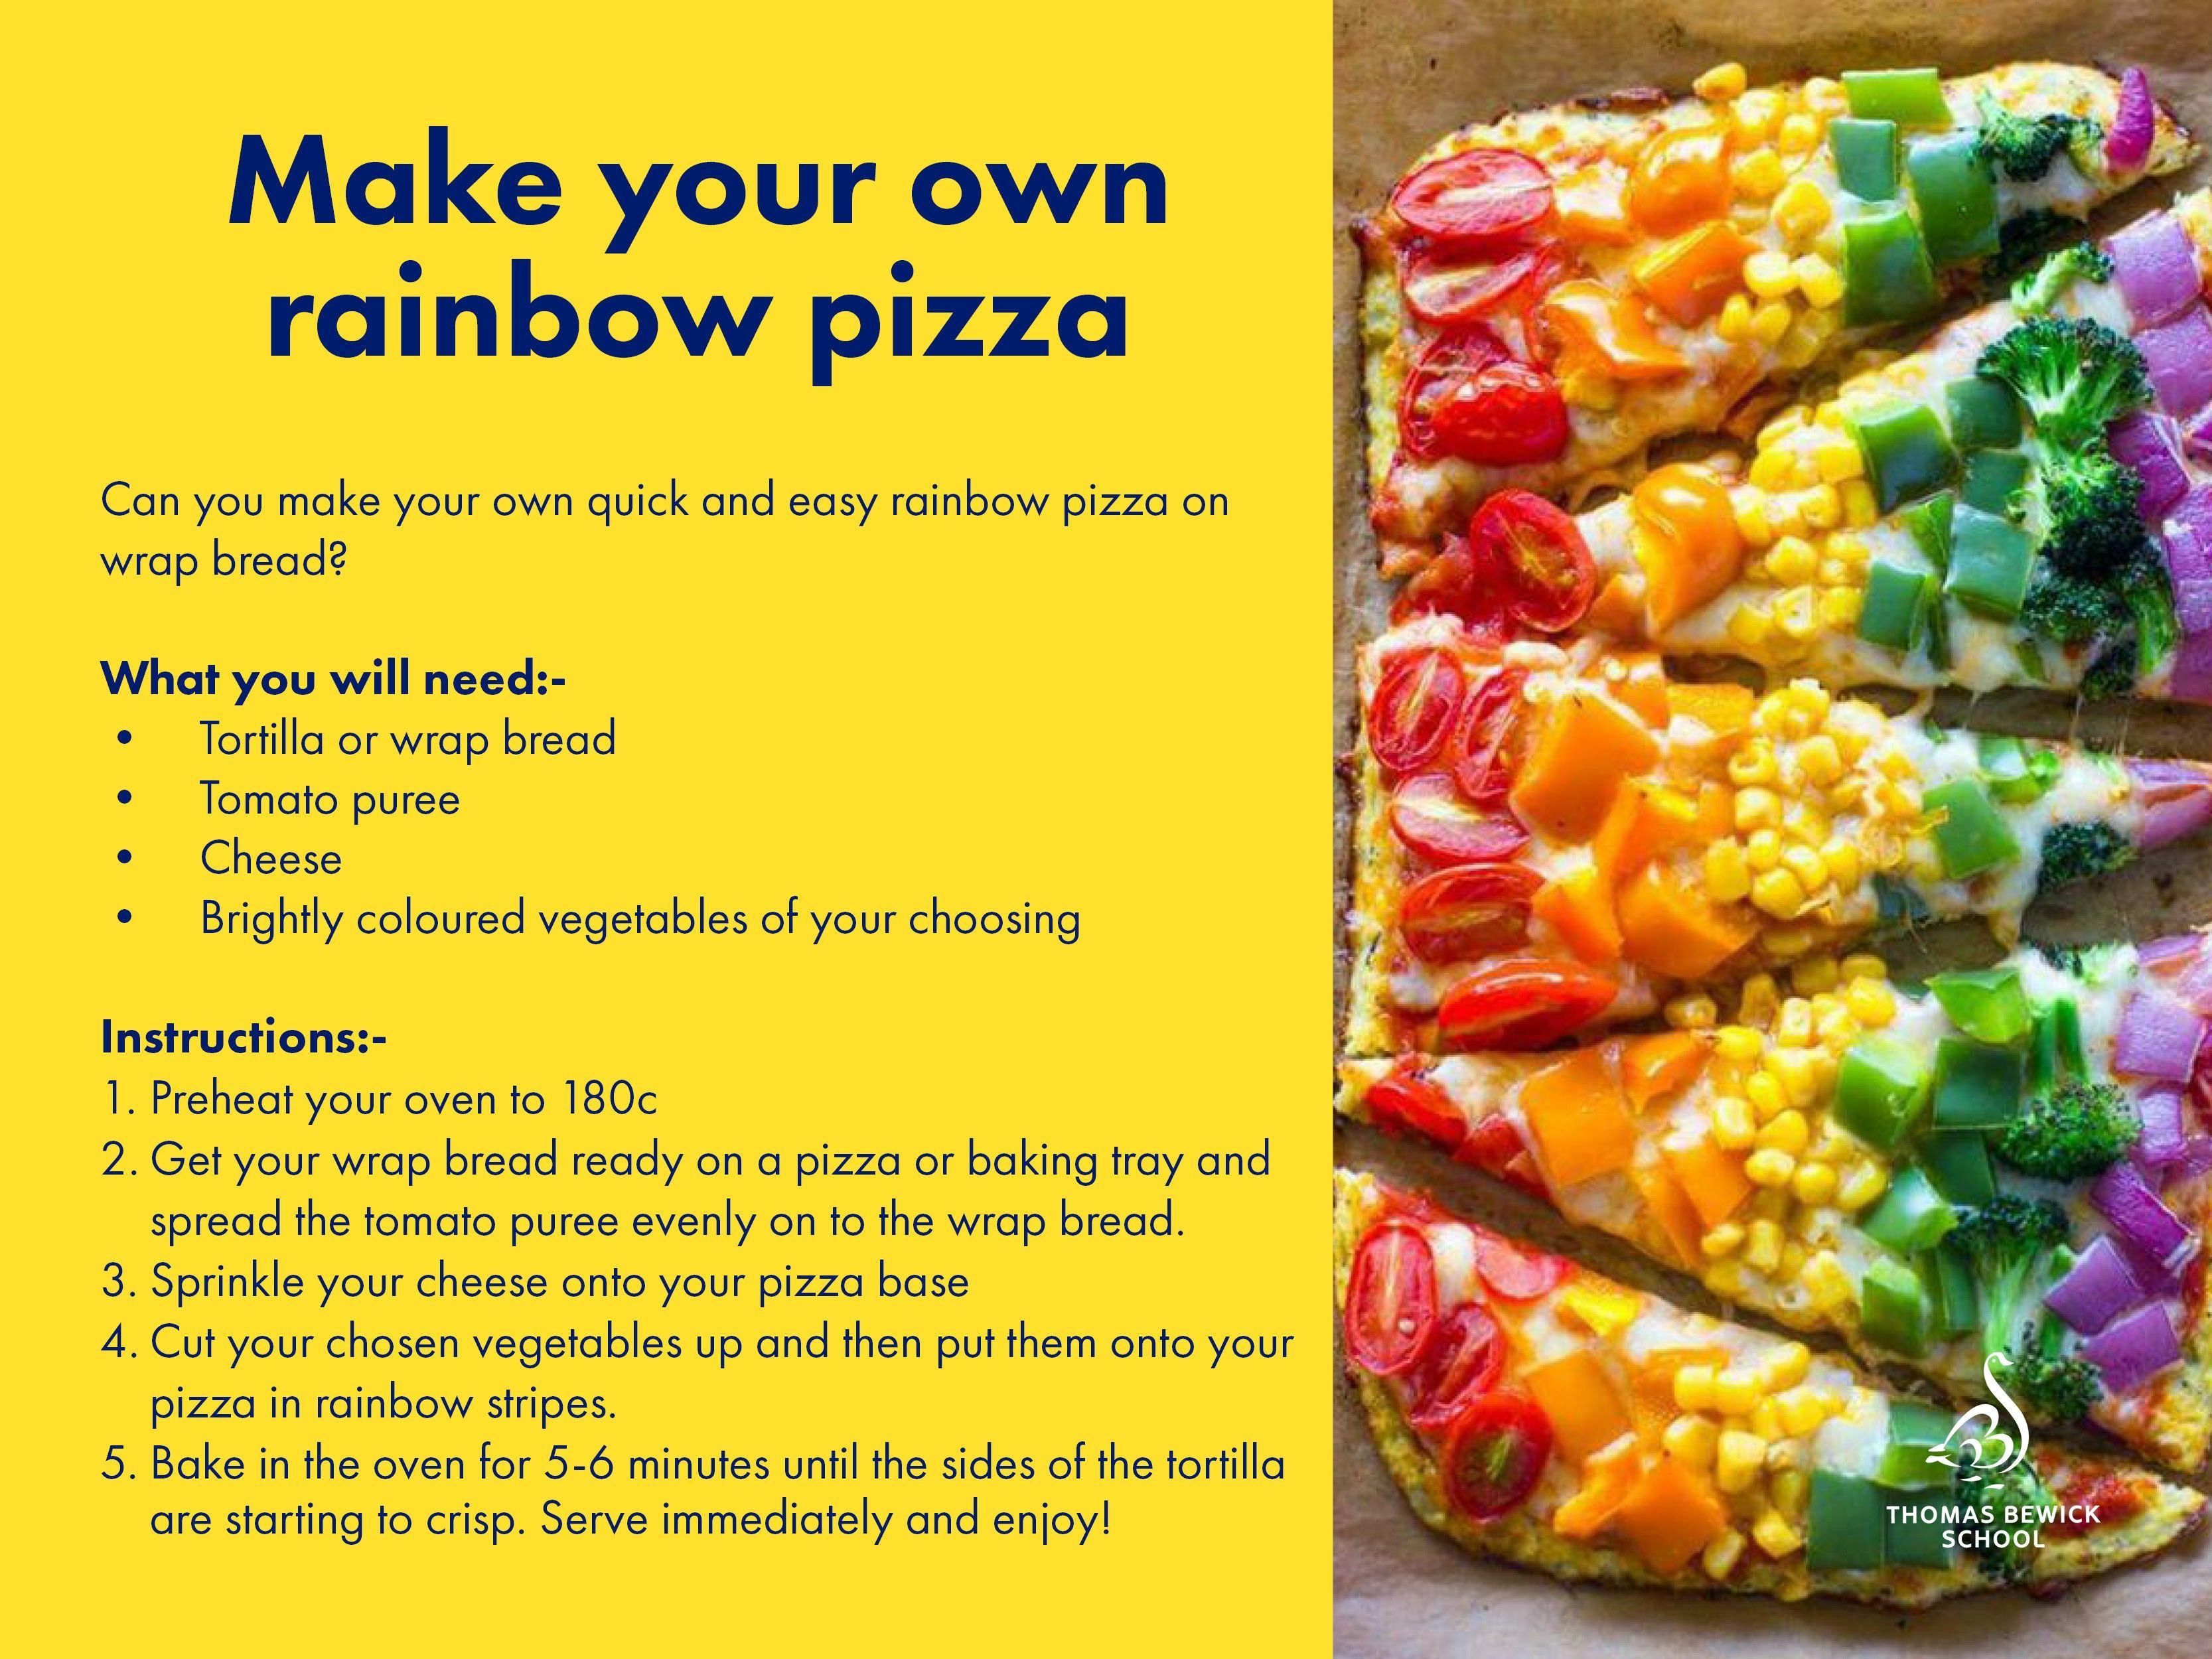 Make Your Own Rainbow Pizza